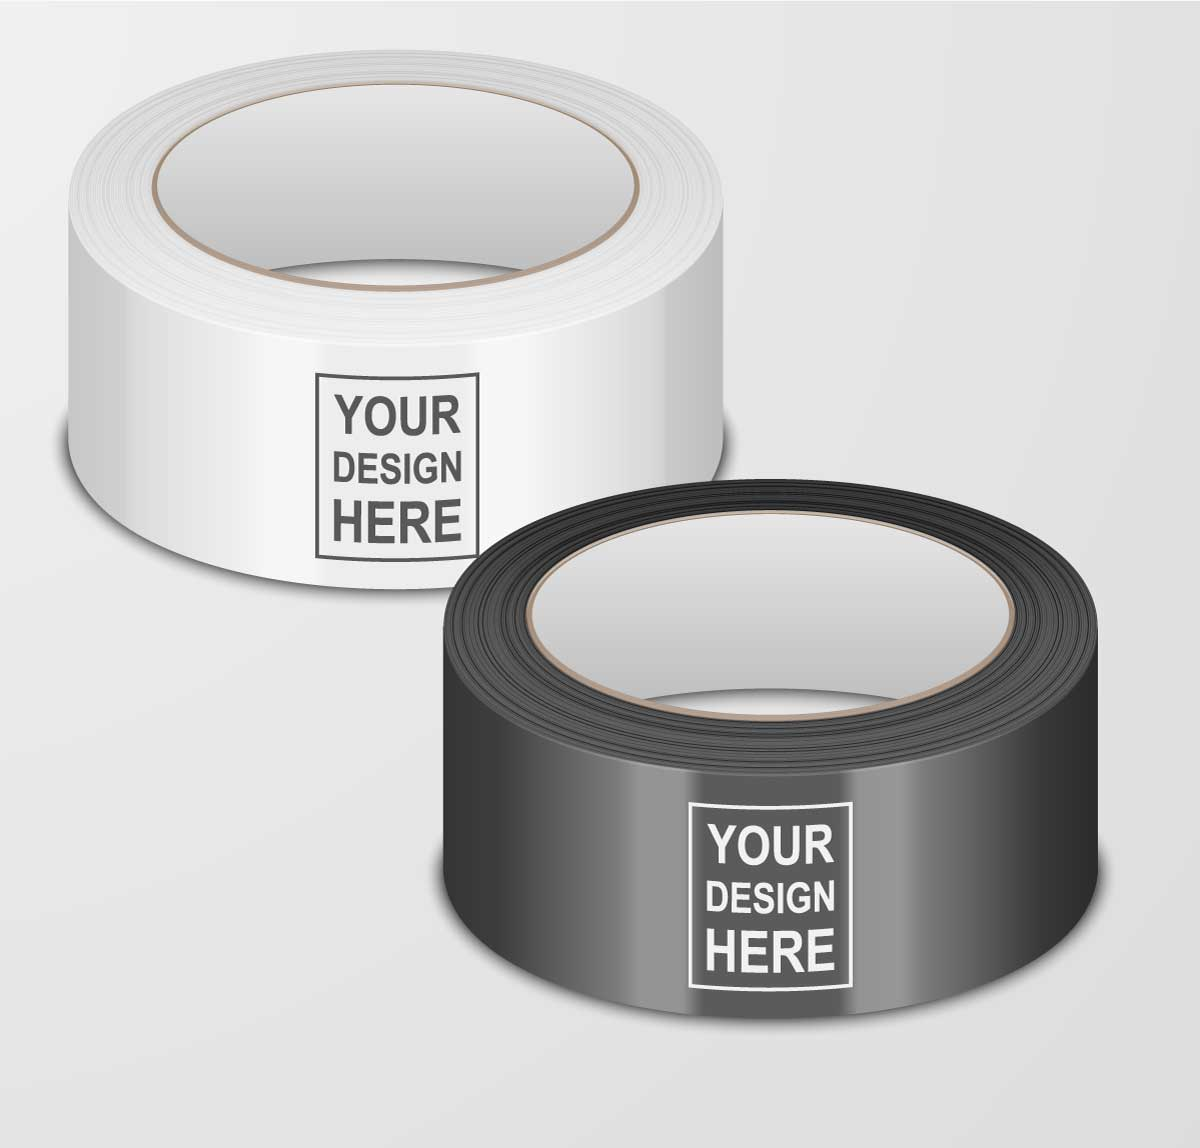 Custom Printed Packing Tape / OPP Tapes with your logo | 2S Packaging